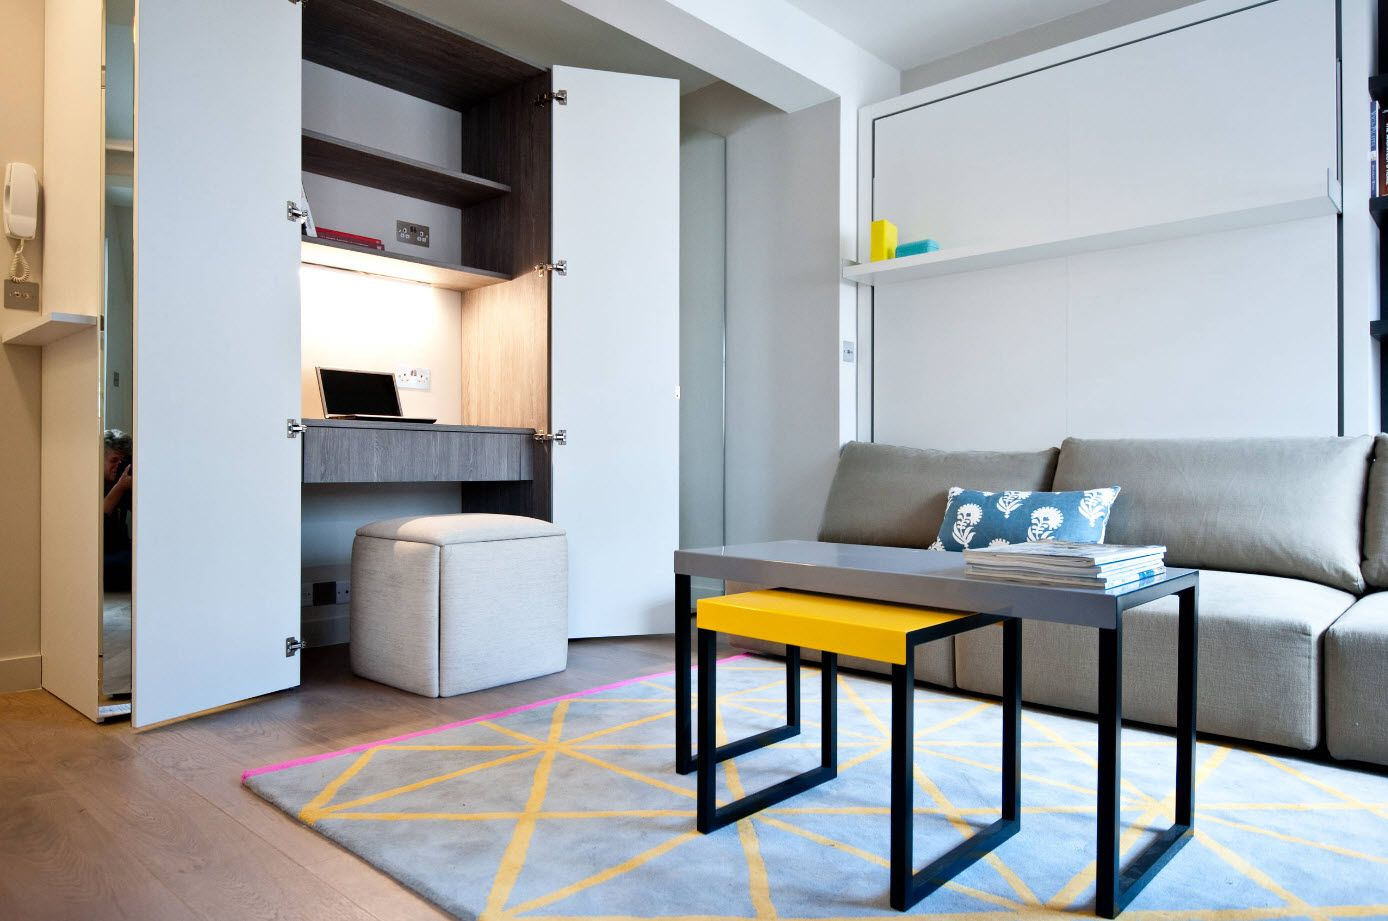 100+ Small Studio Apartment Design Ideas & Real-life Projects Photogallery. Yellow contrast of the chair